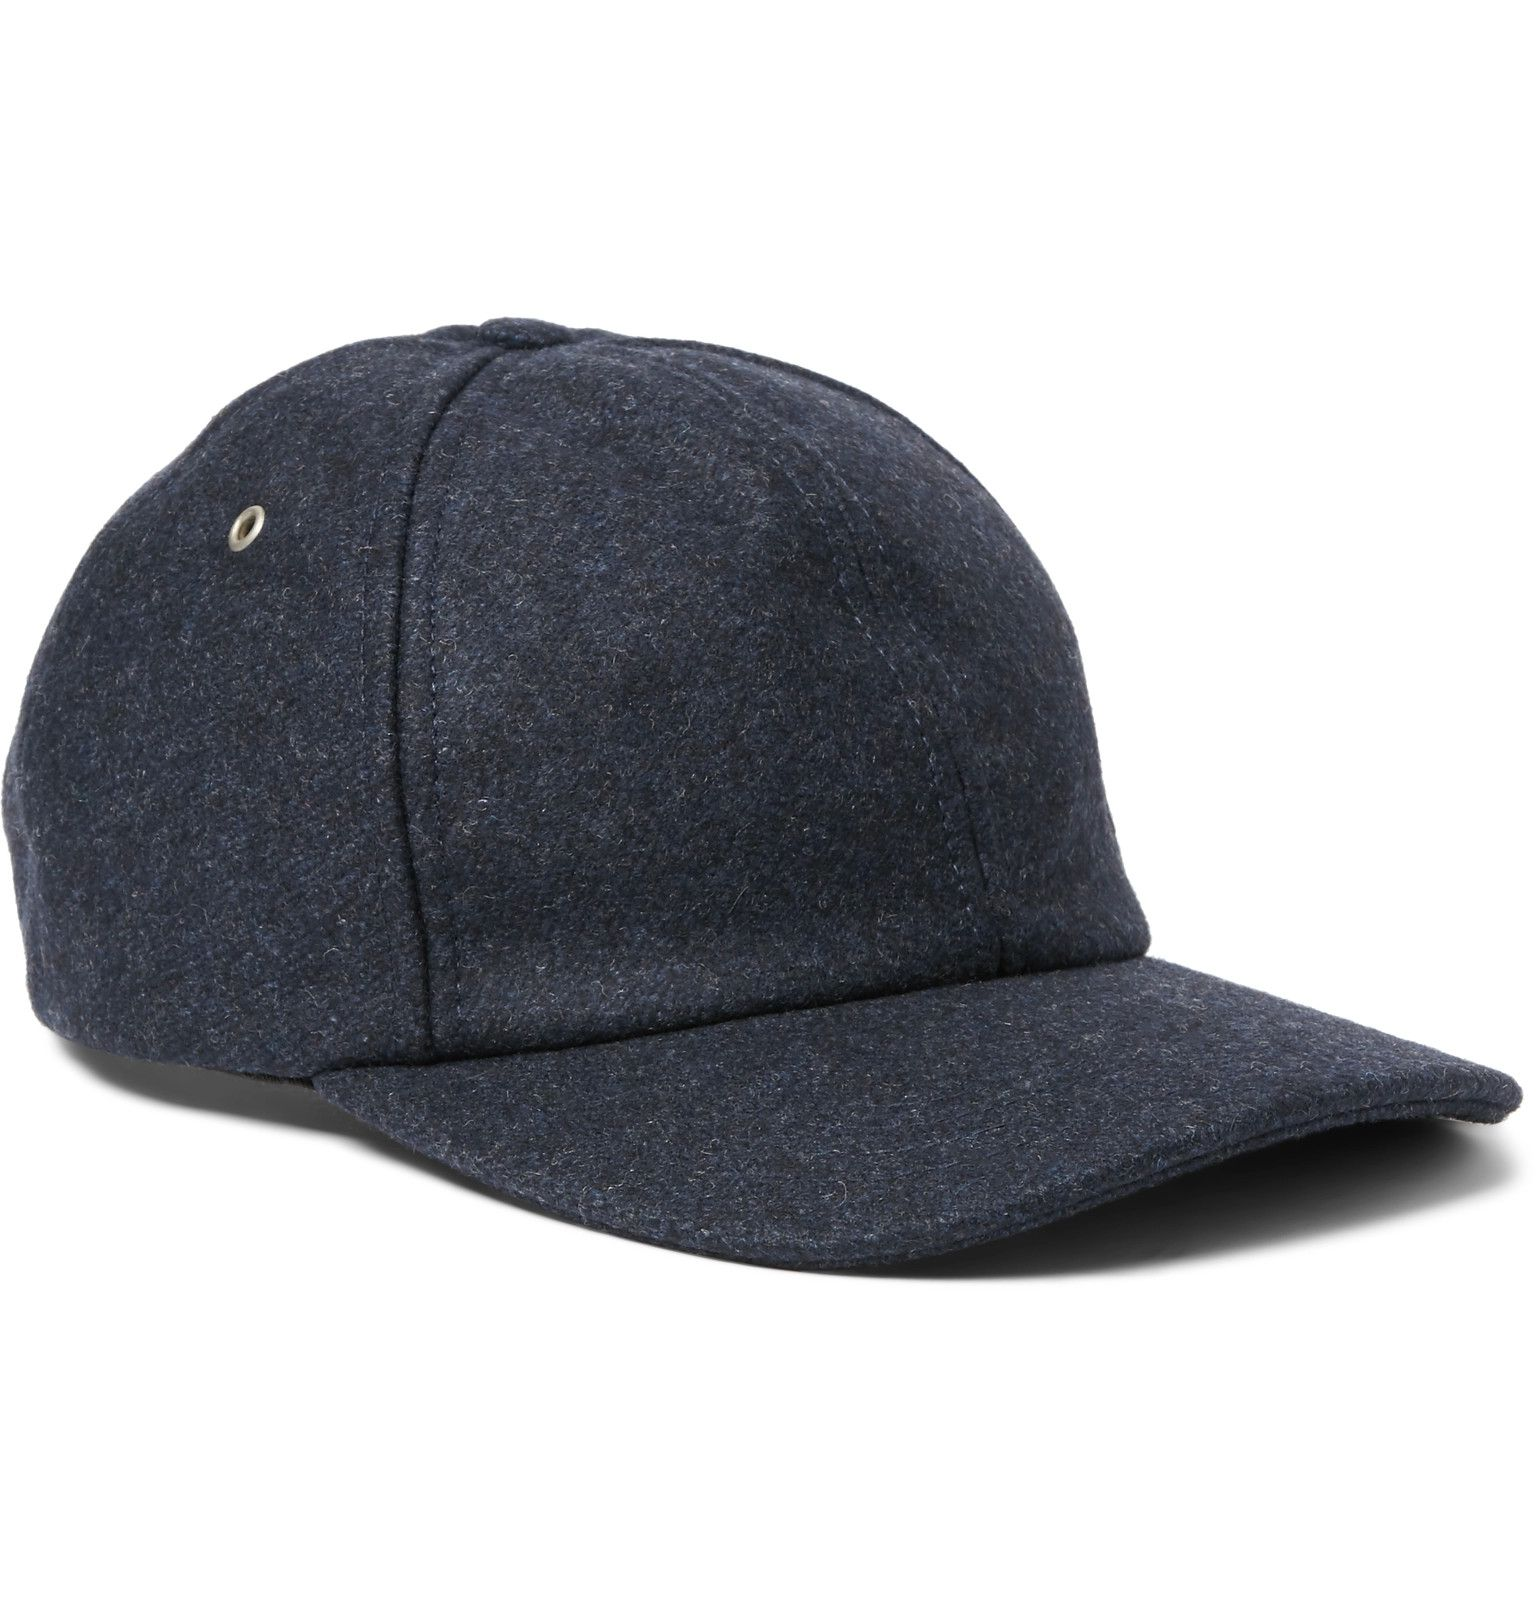 Made from an insulating wool-blend, <a href='http://www.mrporter.com/mens/Designers/AMI'>AMI</a>'s baseball cap proves the sporty accessory isn't just for sunny weather. The easy-to-wear navy hue makes it a timeless choice, while the adjustable back tab offers a customised fit.